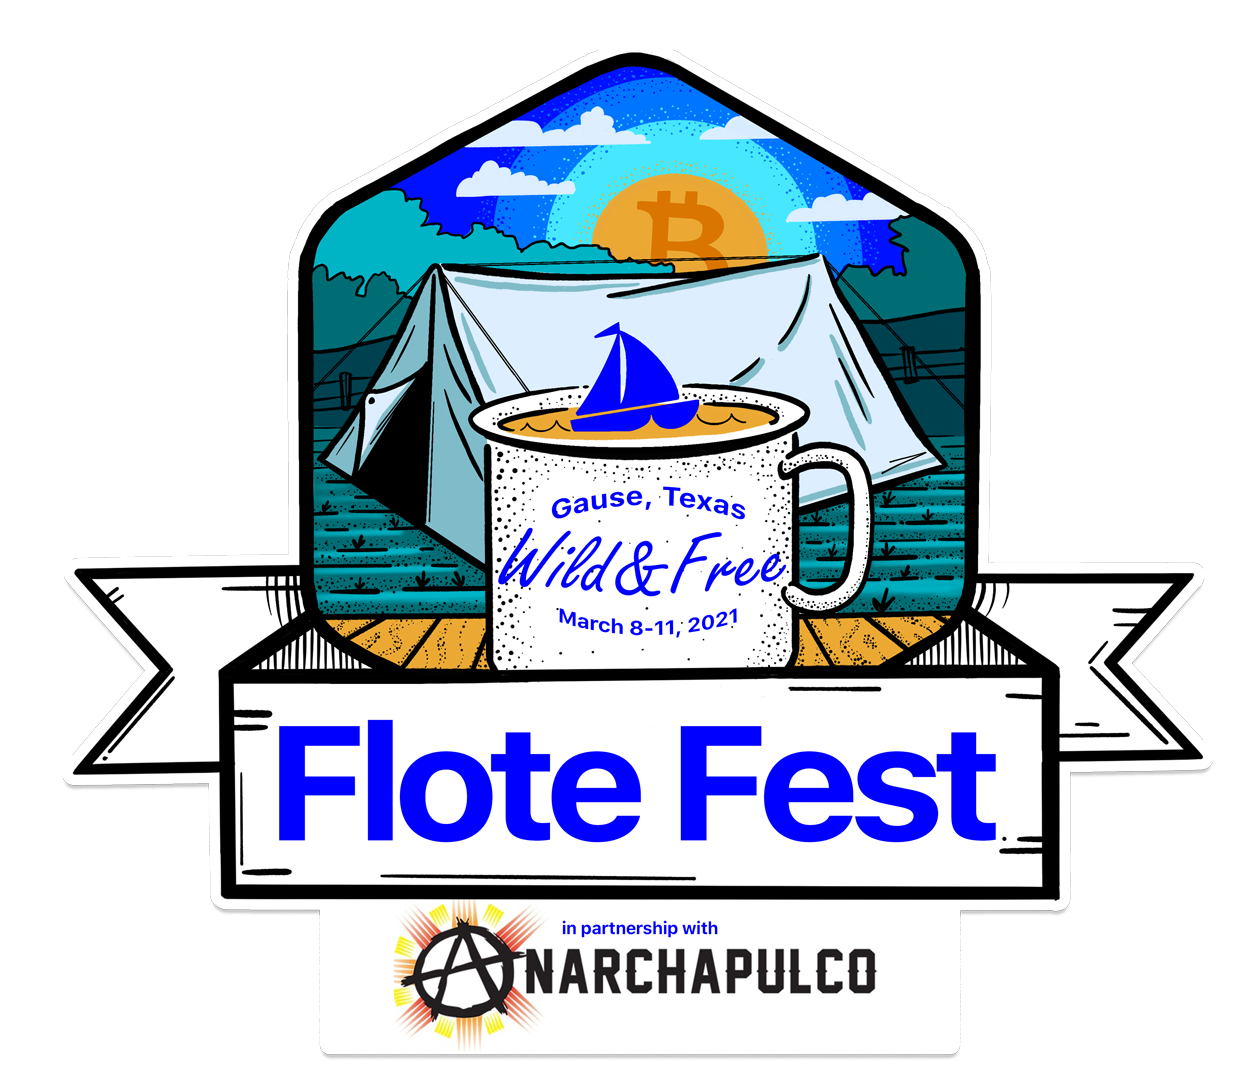 Flote Fest + Anarchapulco 2021